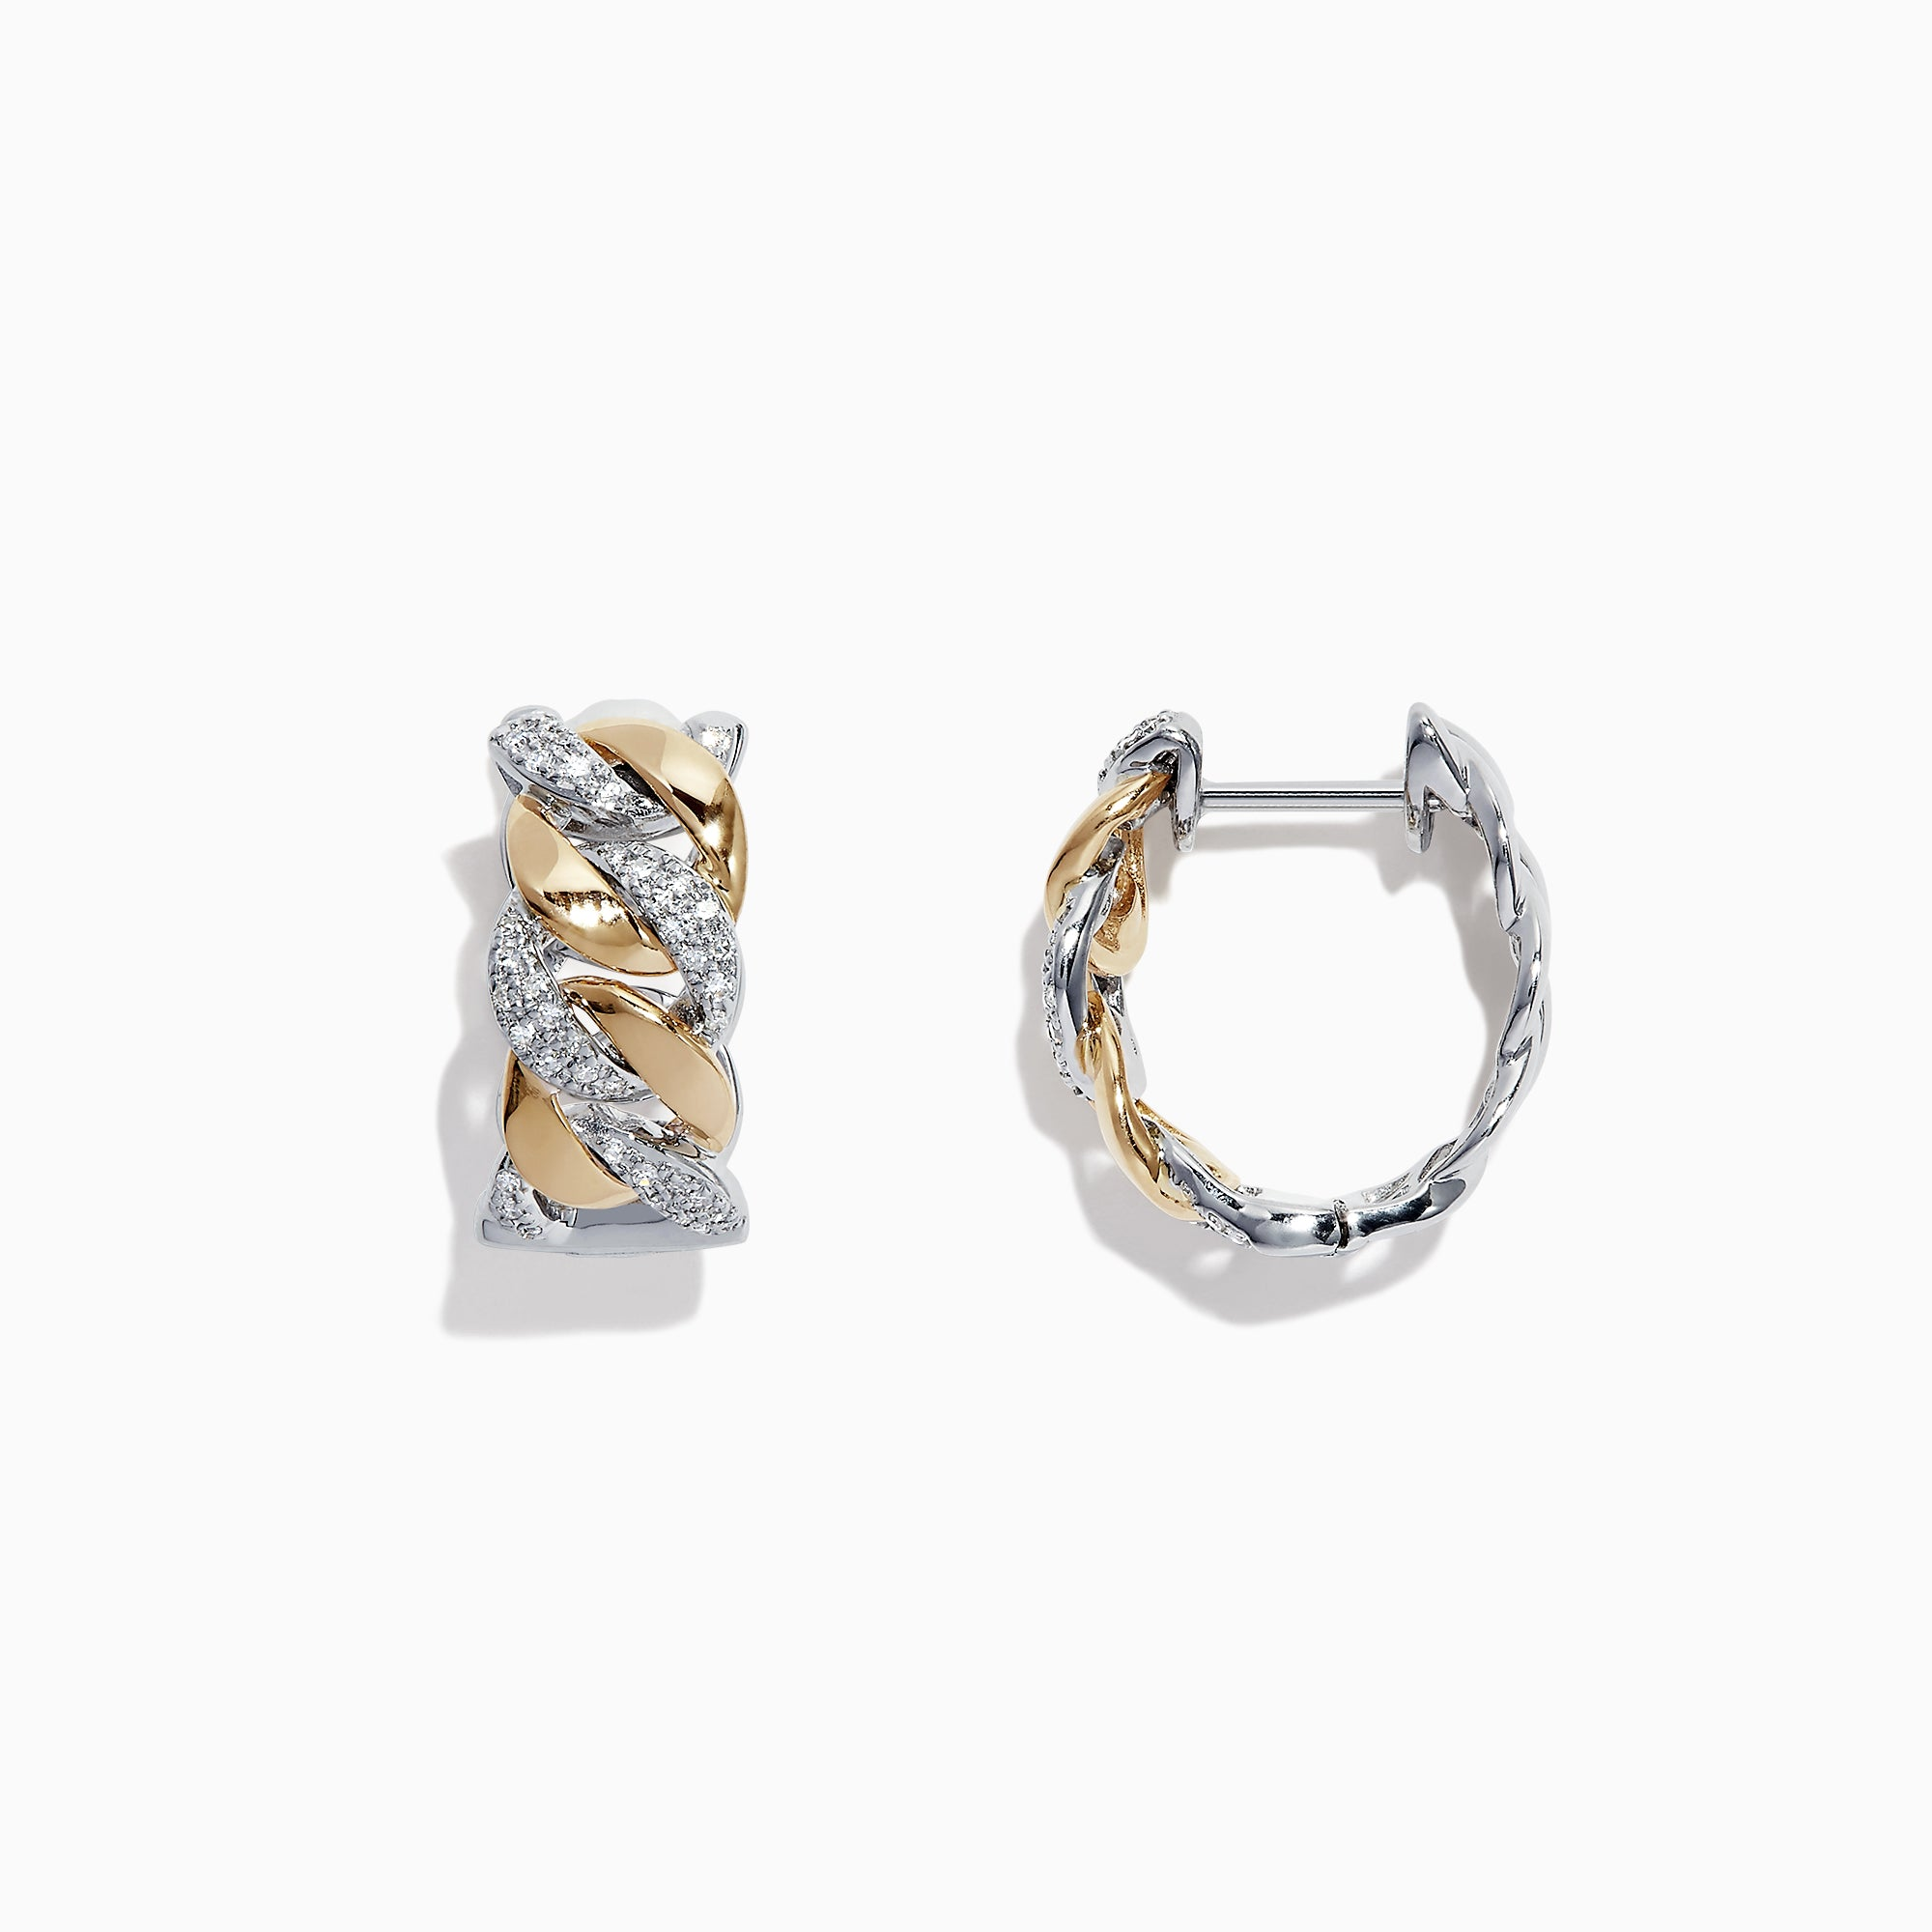 Effy Duo 14K Two Tone Gold Diamond Chain Link Hoop Earrings, 0.28 TCW